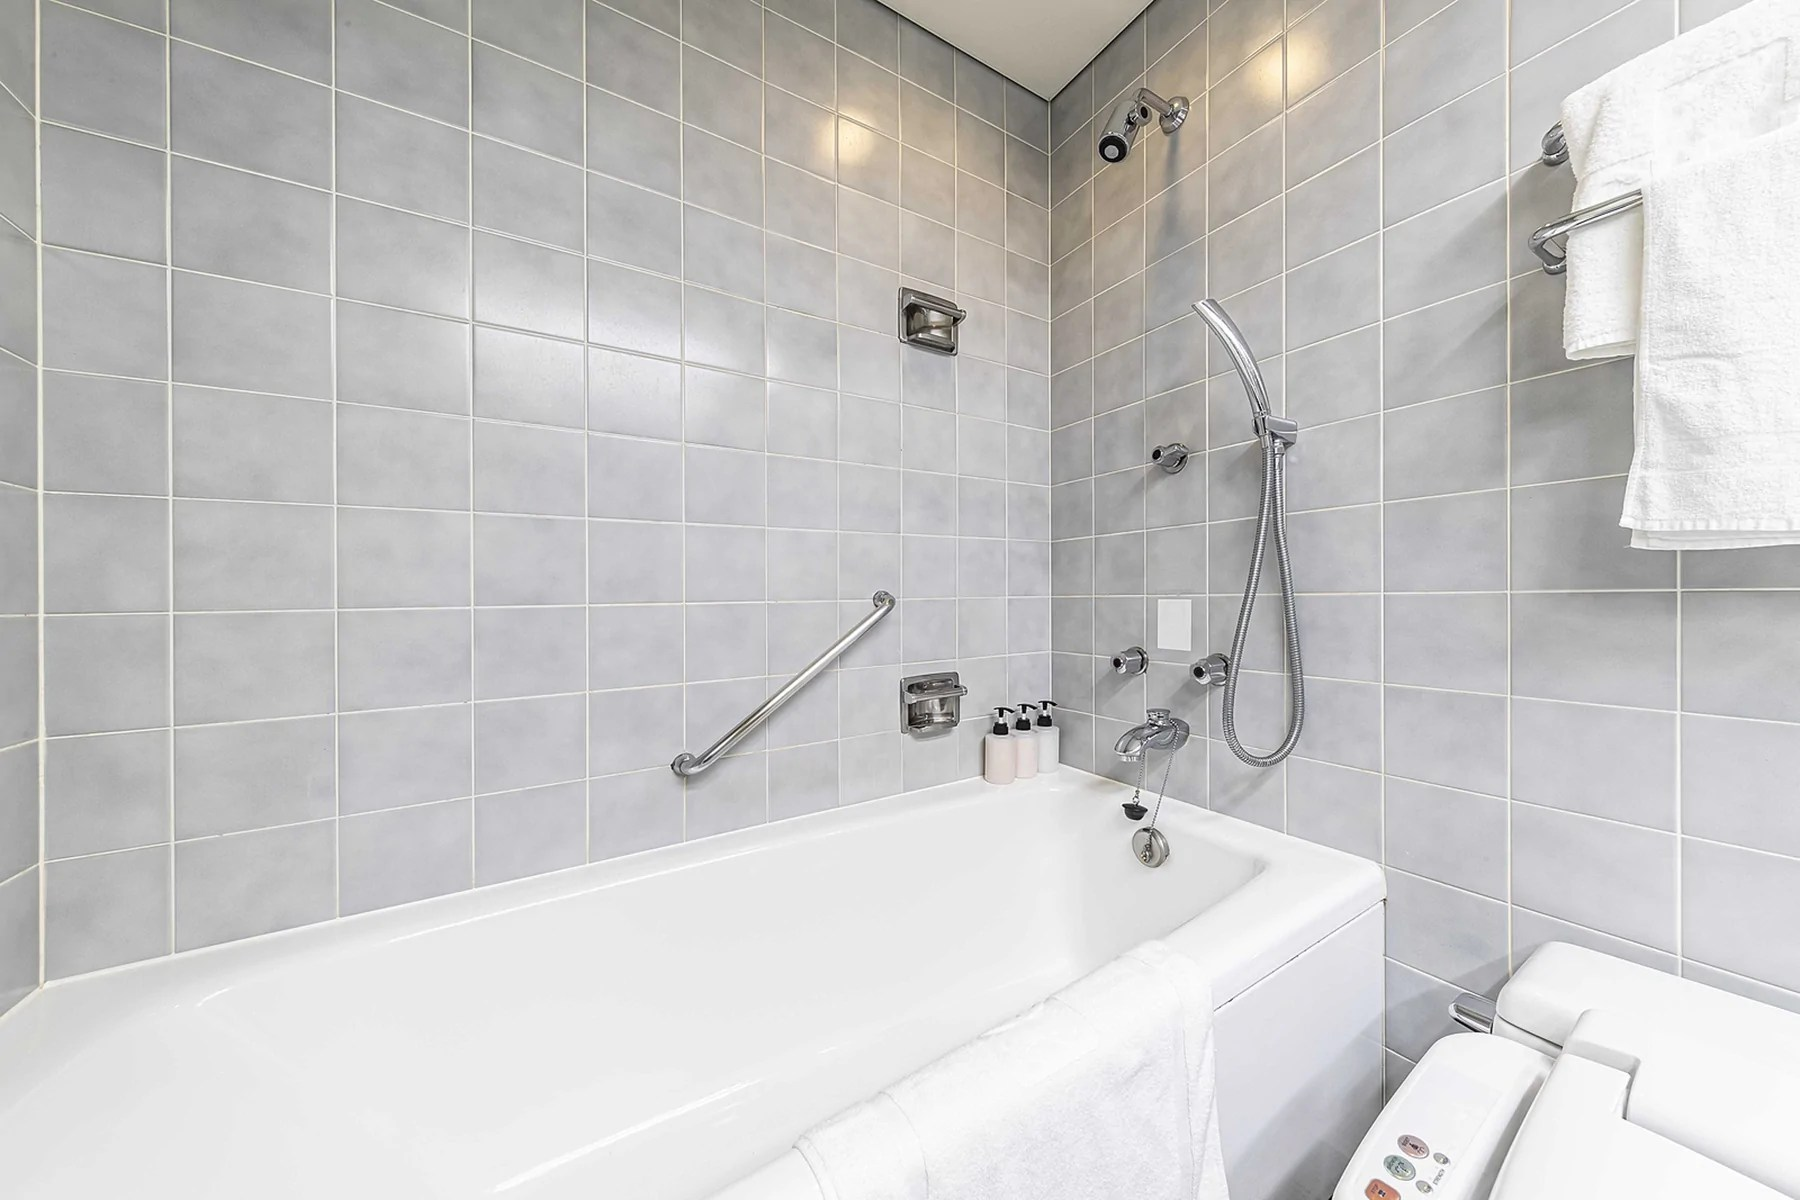 tub shower combos increase waste a lot